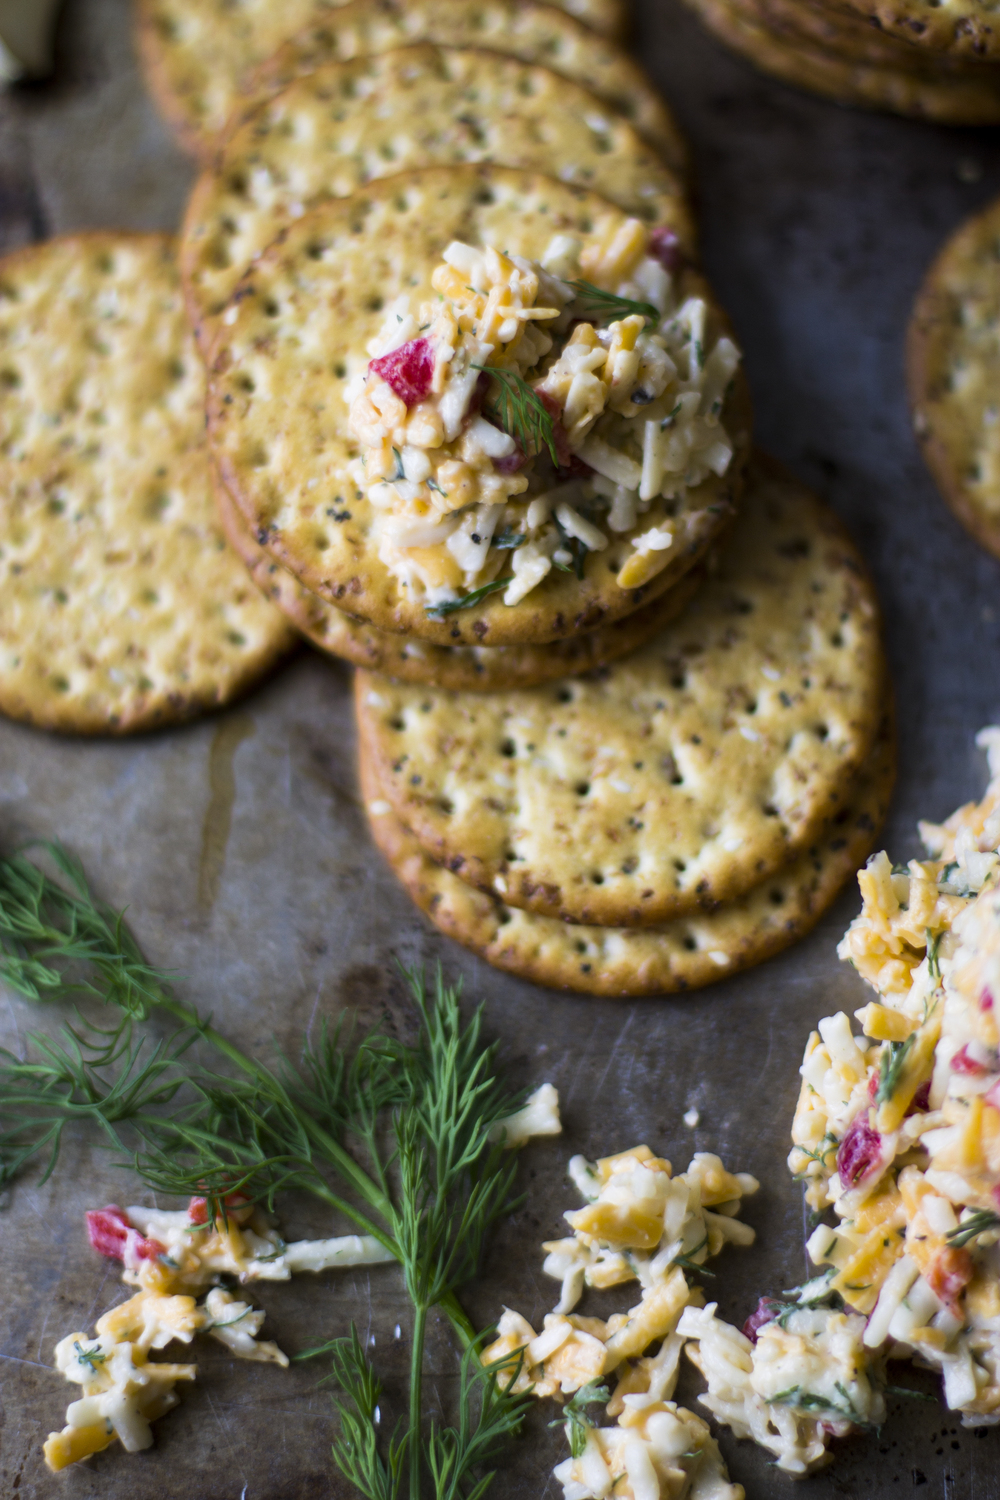 Dill and Garlic Pimento Cheese: My Diary of Us